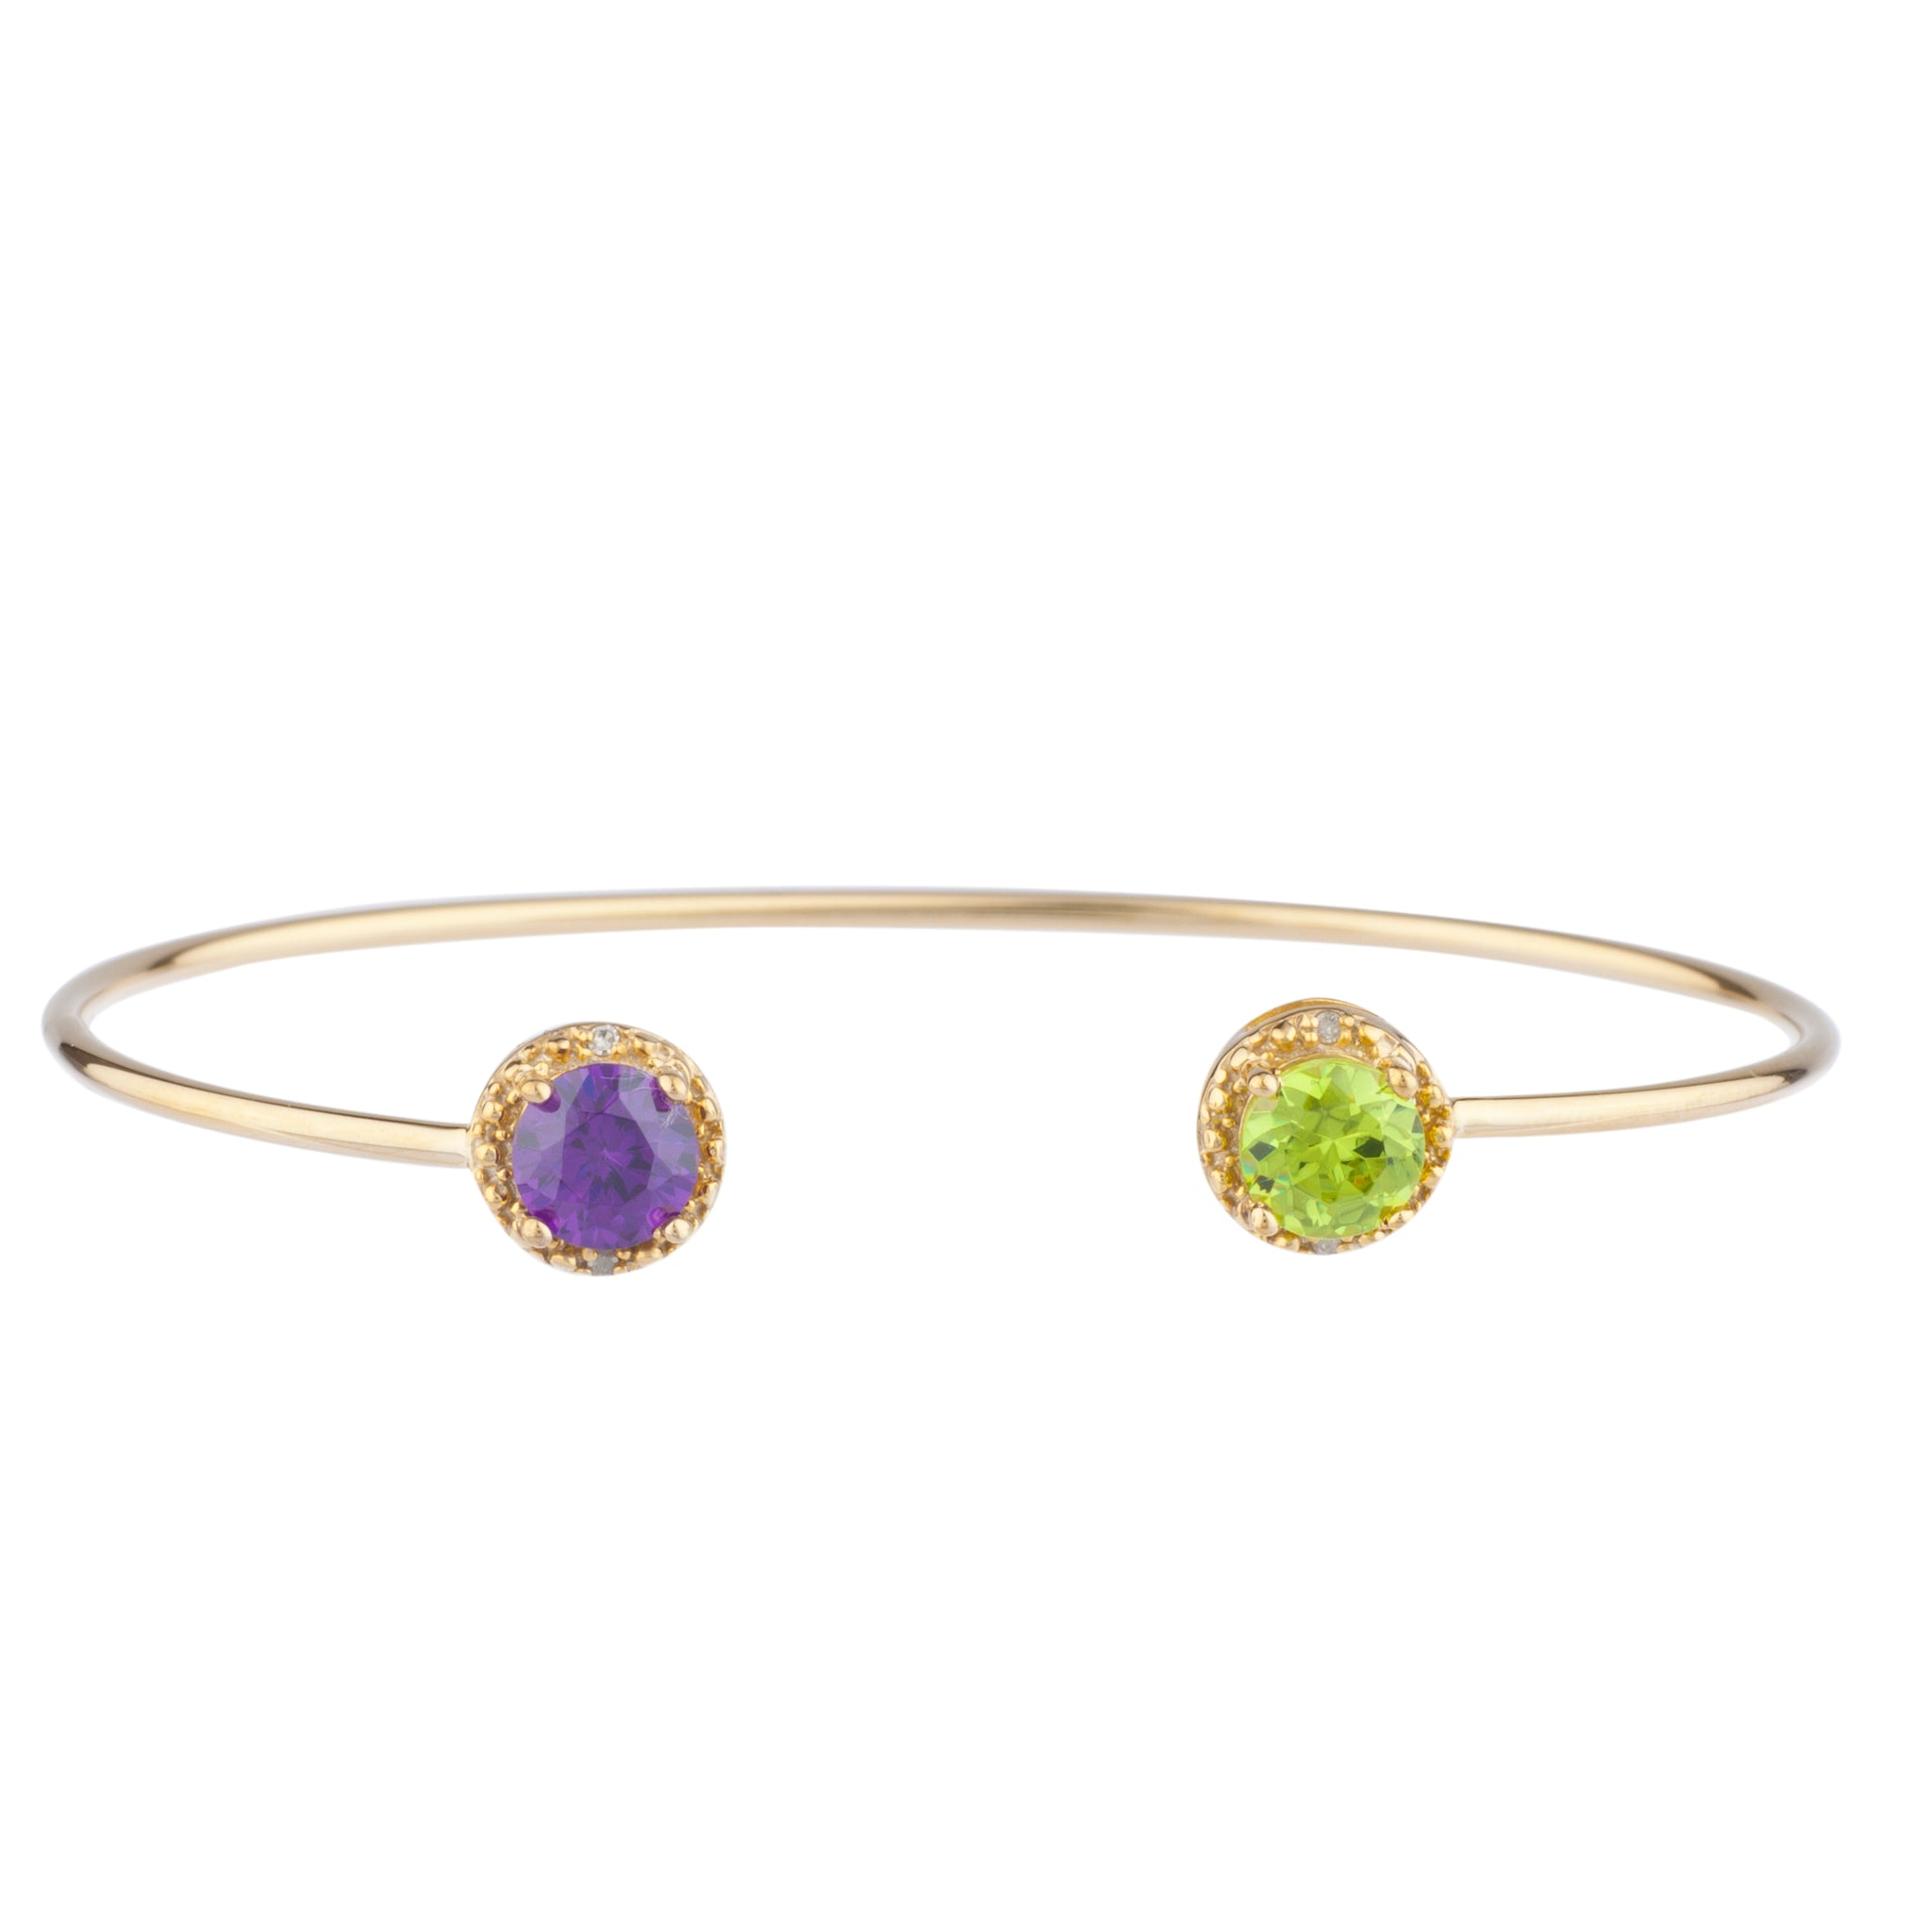 Amethyst & Peridot Diamond Bangle Round Bracelet 14Kt Yellow Gold Plated Over .925 Sterling Silver